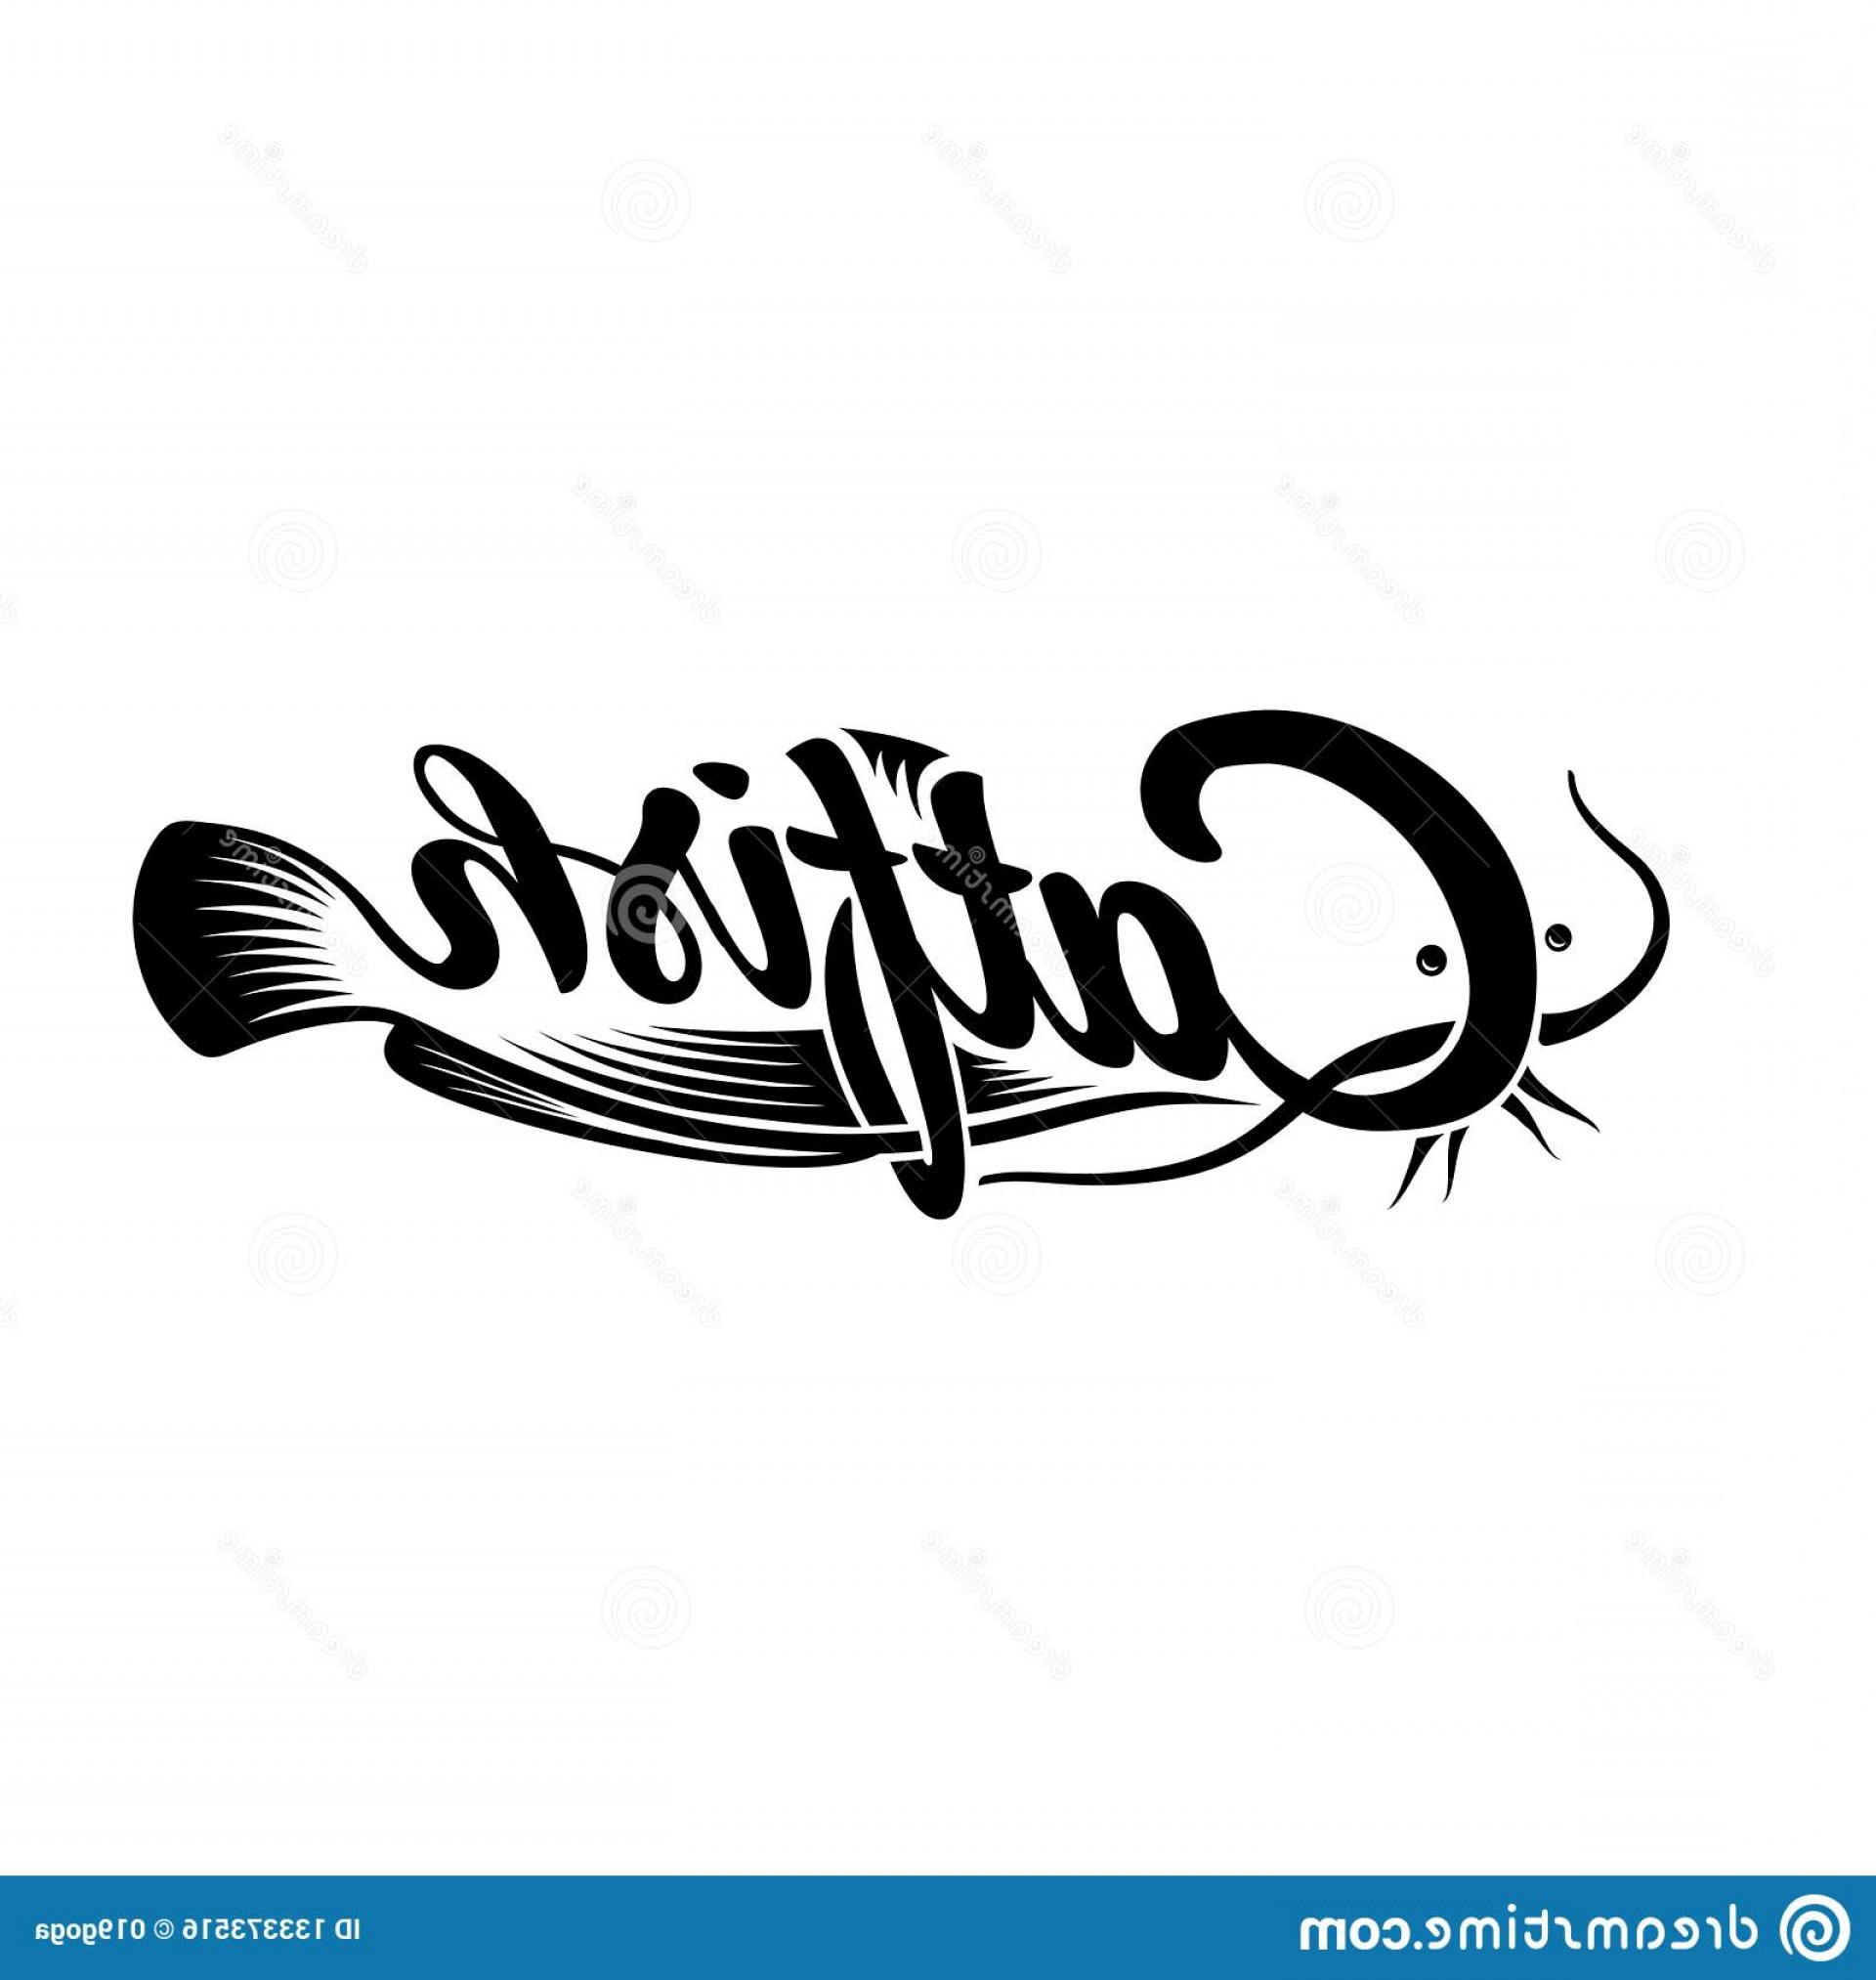 Catfish Vector Logo: Catfish Logo Black White Lettering Design Decorative Inscription Cat Fish T Shirt Apparel Typography Print Poster Vector Image